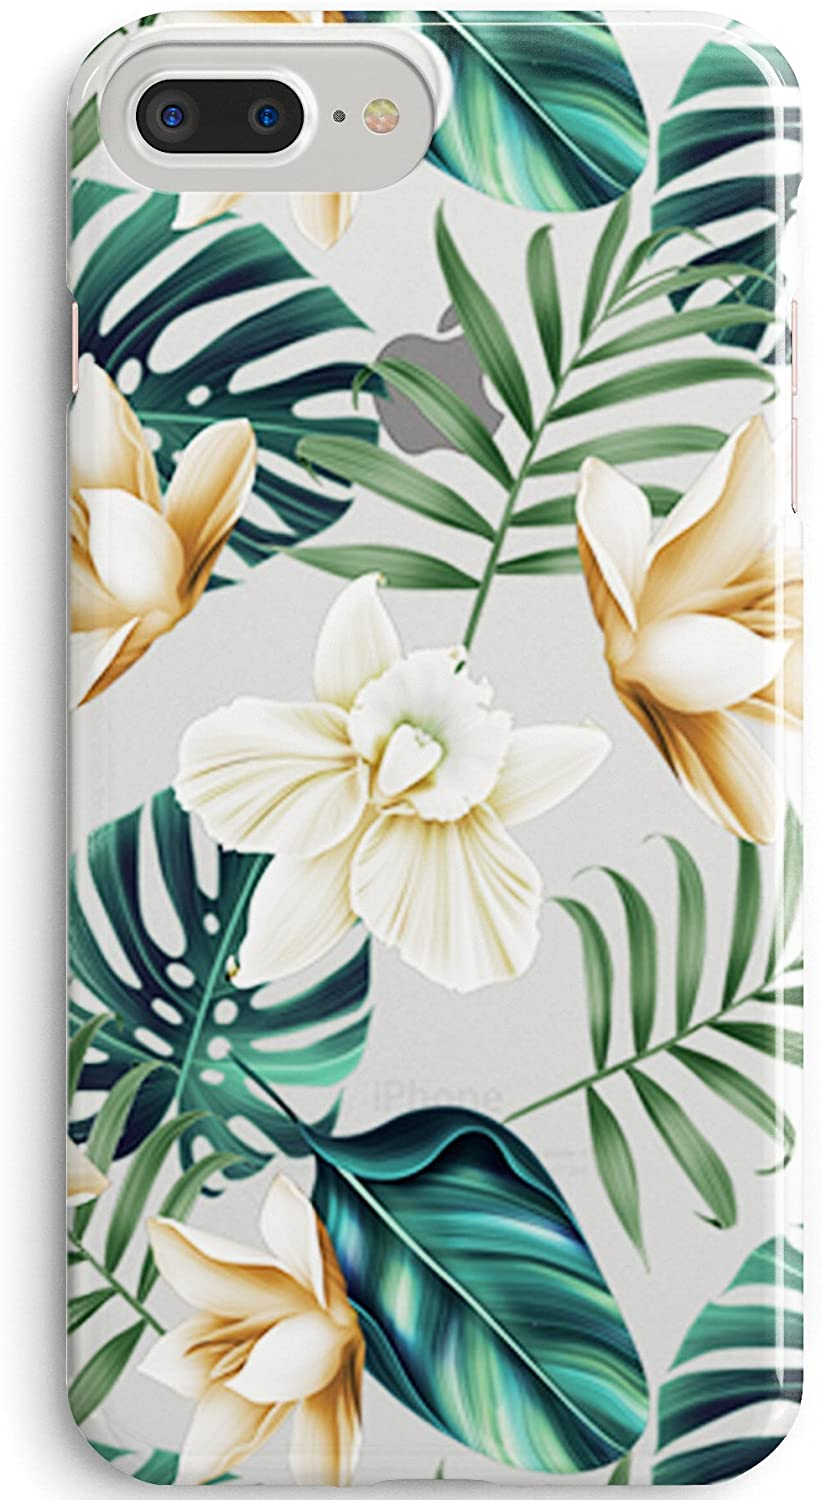 iPhone 8 Plus/iPhone 7 Plus Case,Cute Girls Flowers Coffee Floral Bahama Leaves Aloha Love Summer Tropical Japanese Cherry Blossom Roses Spring Elegant Clear Soft Case Compatible iPhone 7 Plus/8 Plus